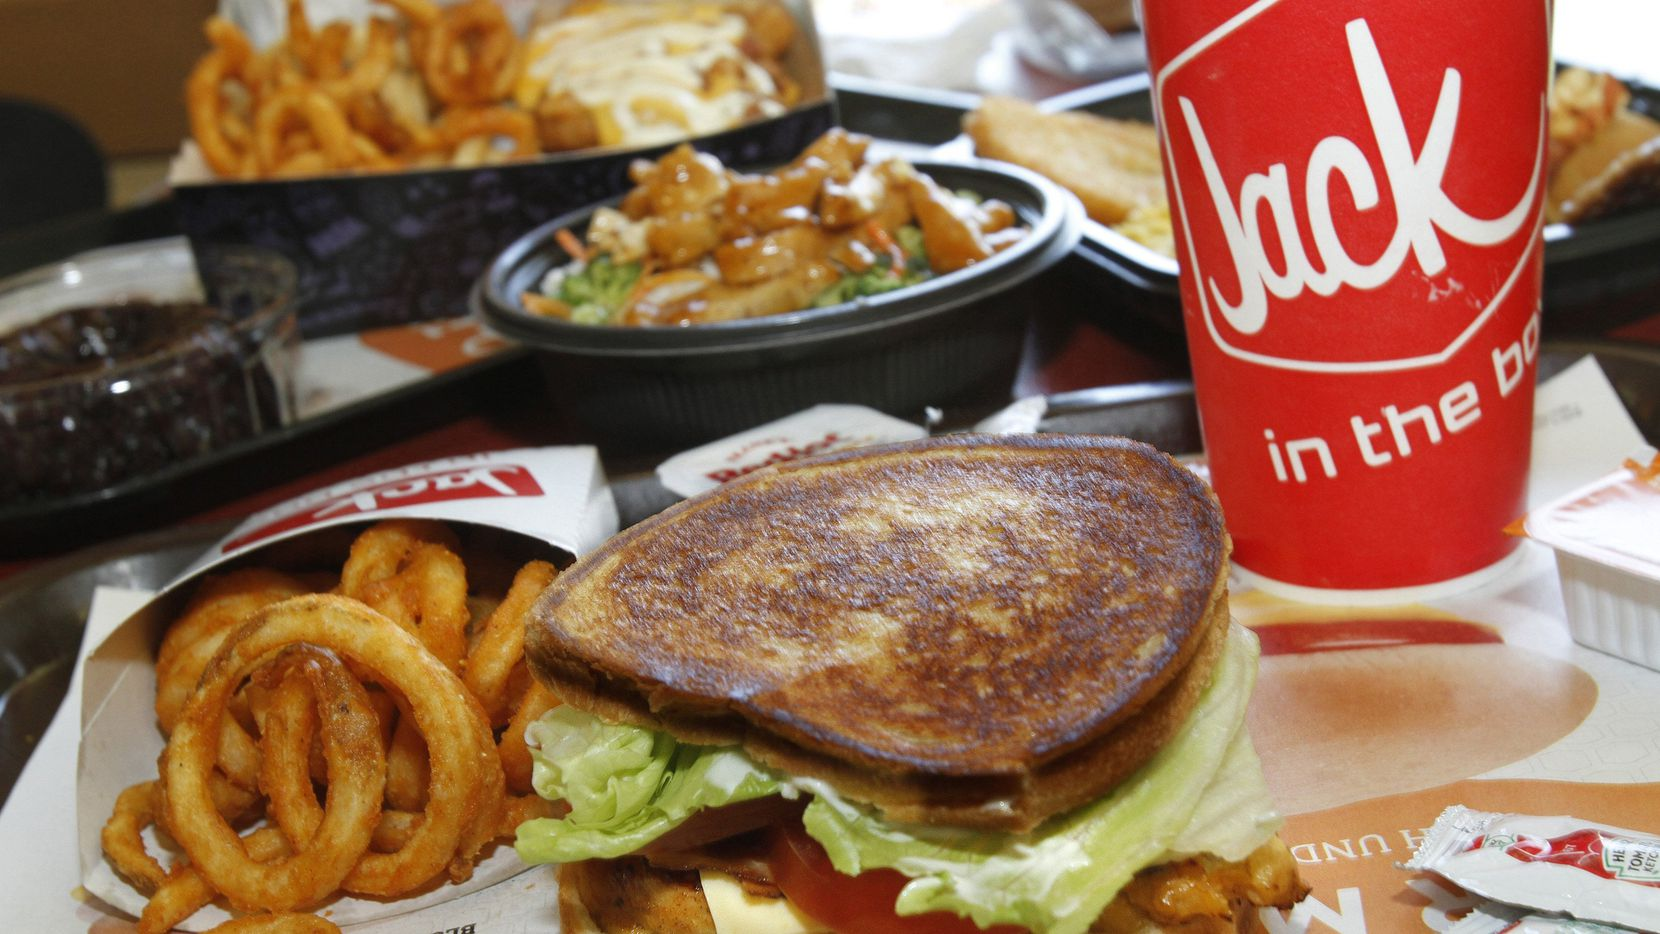 Jack in the Box sells cheap, quick and tasty food, much of it fried and heavy on fat and calories. And it's not shy about it. (Glenn Koenig/Los Angeles Times/MCT)